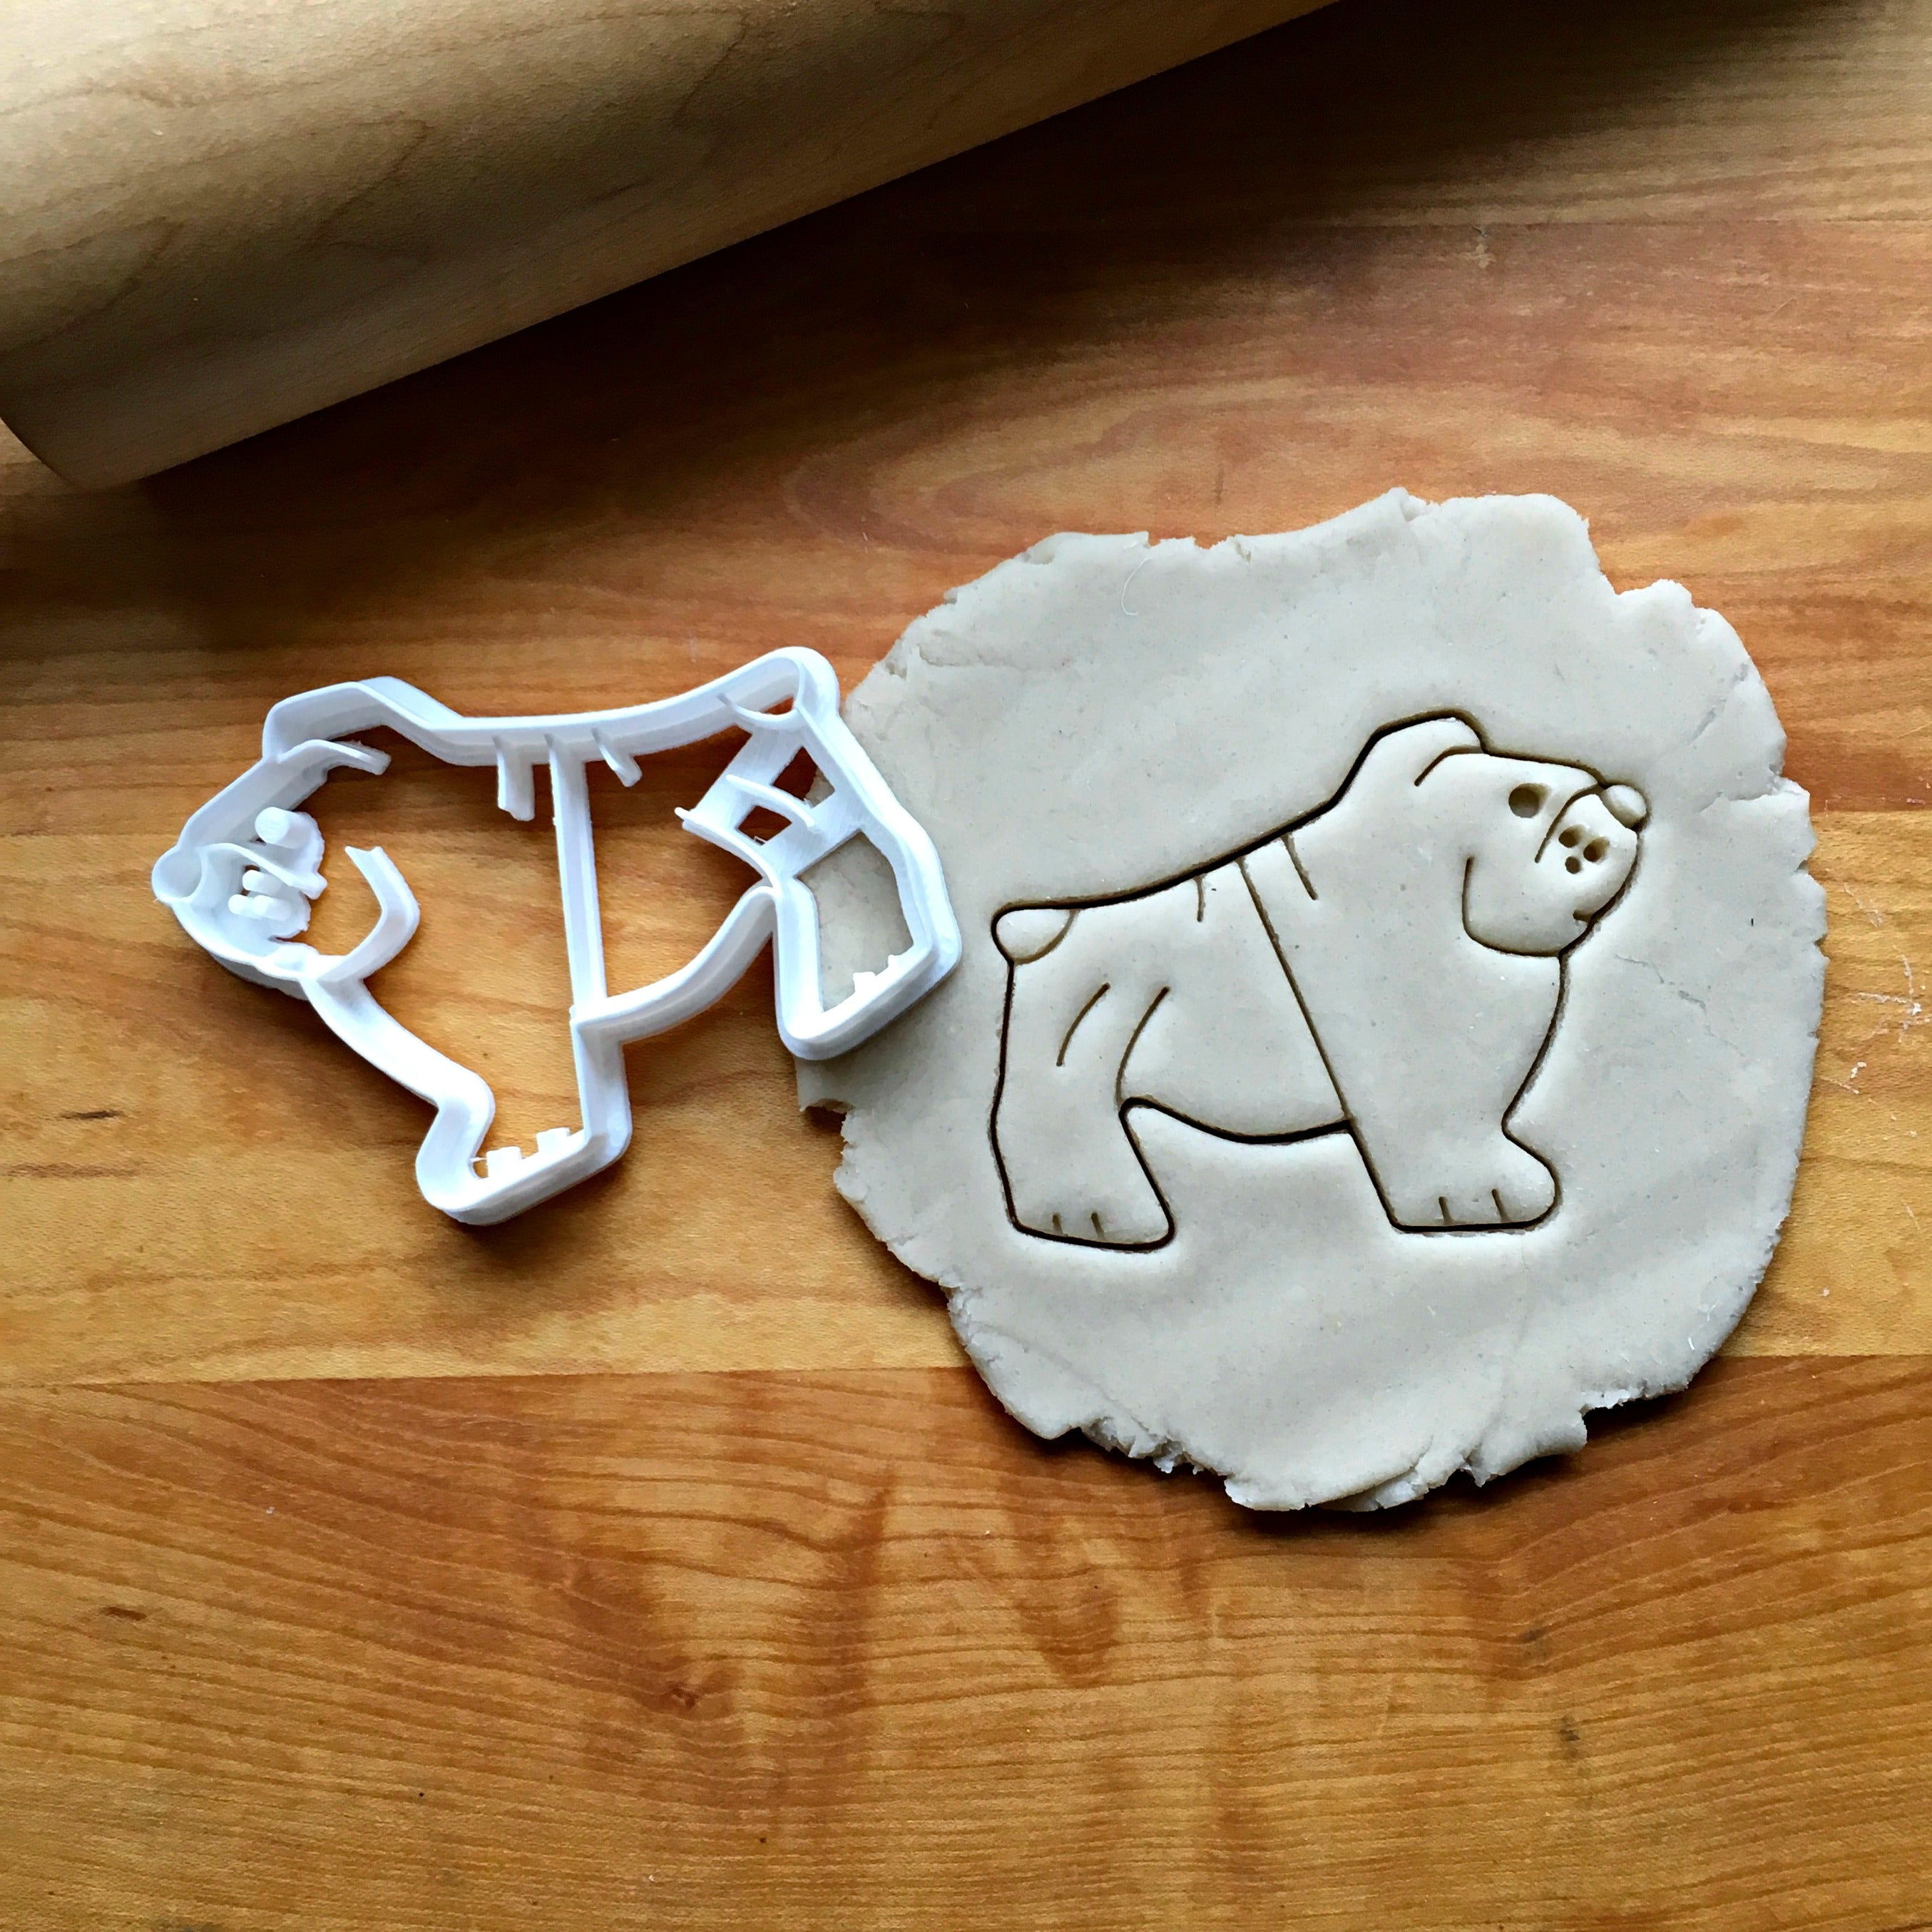 Bulldog Cookie Cutter/Dishwasher Safe